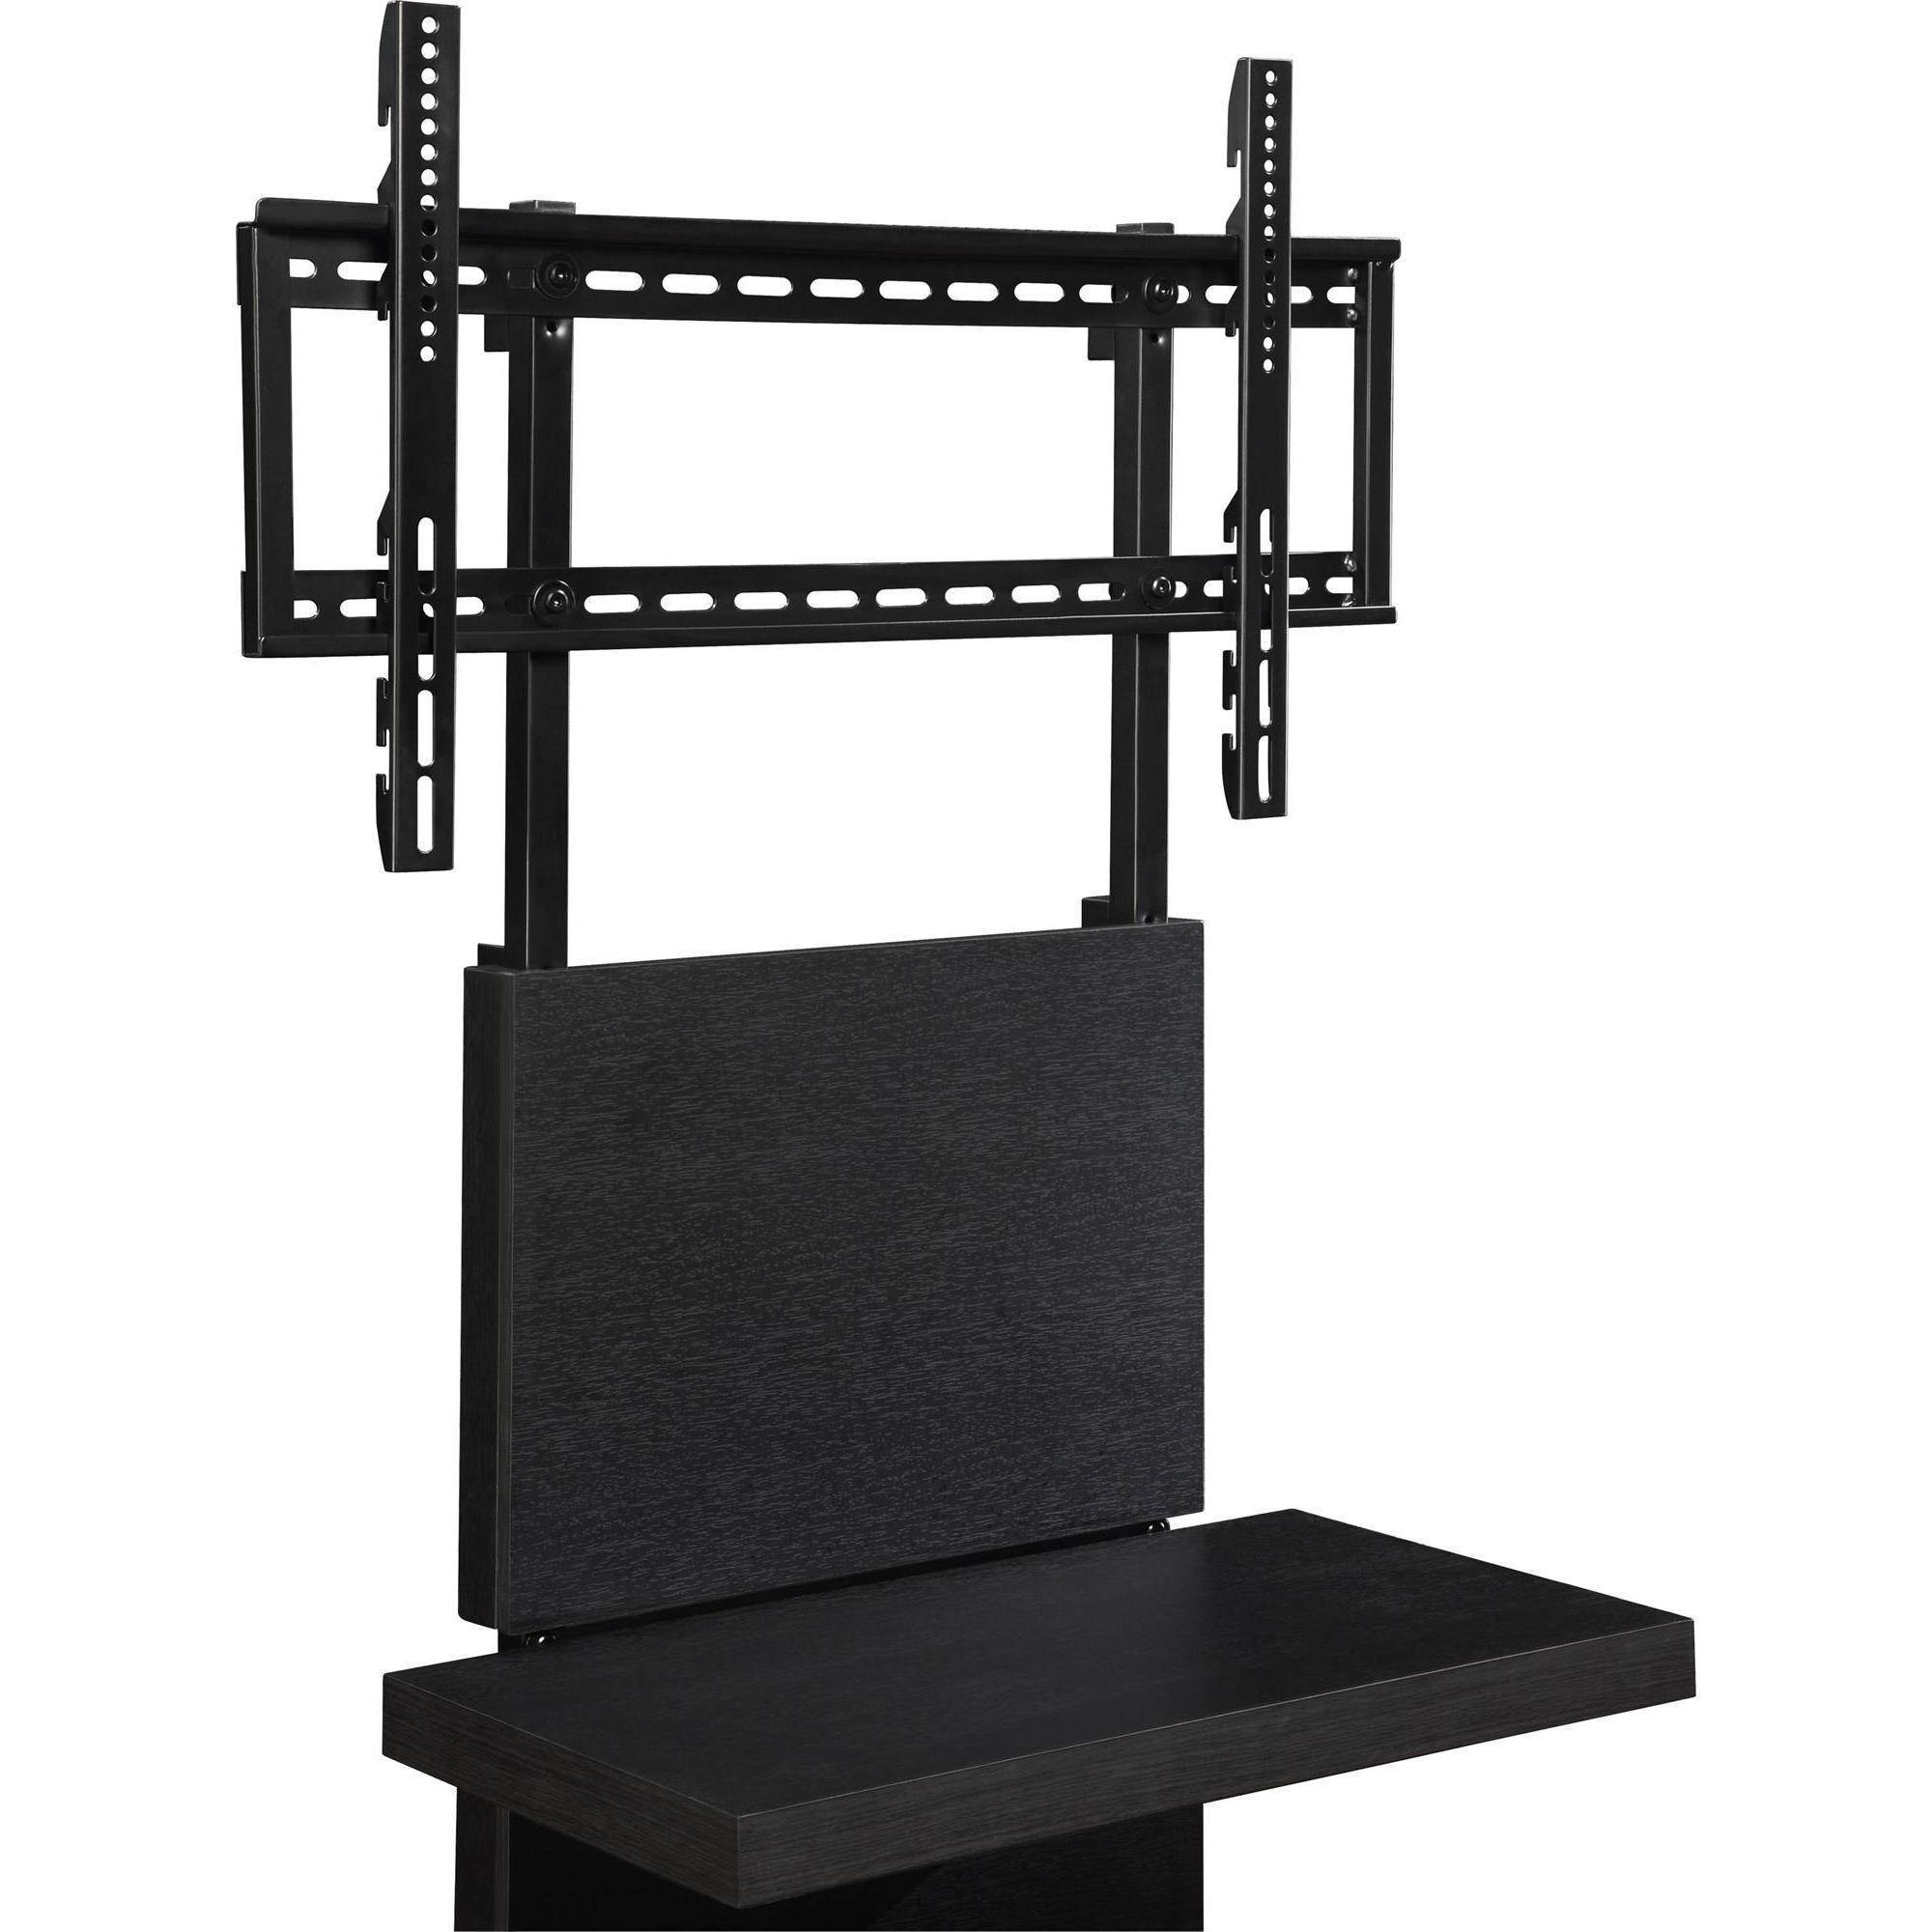 pedestal bottomleft stand shipping free front mount black base screen flat in blank universal tvs for wall us tv htm